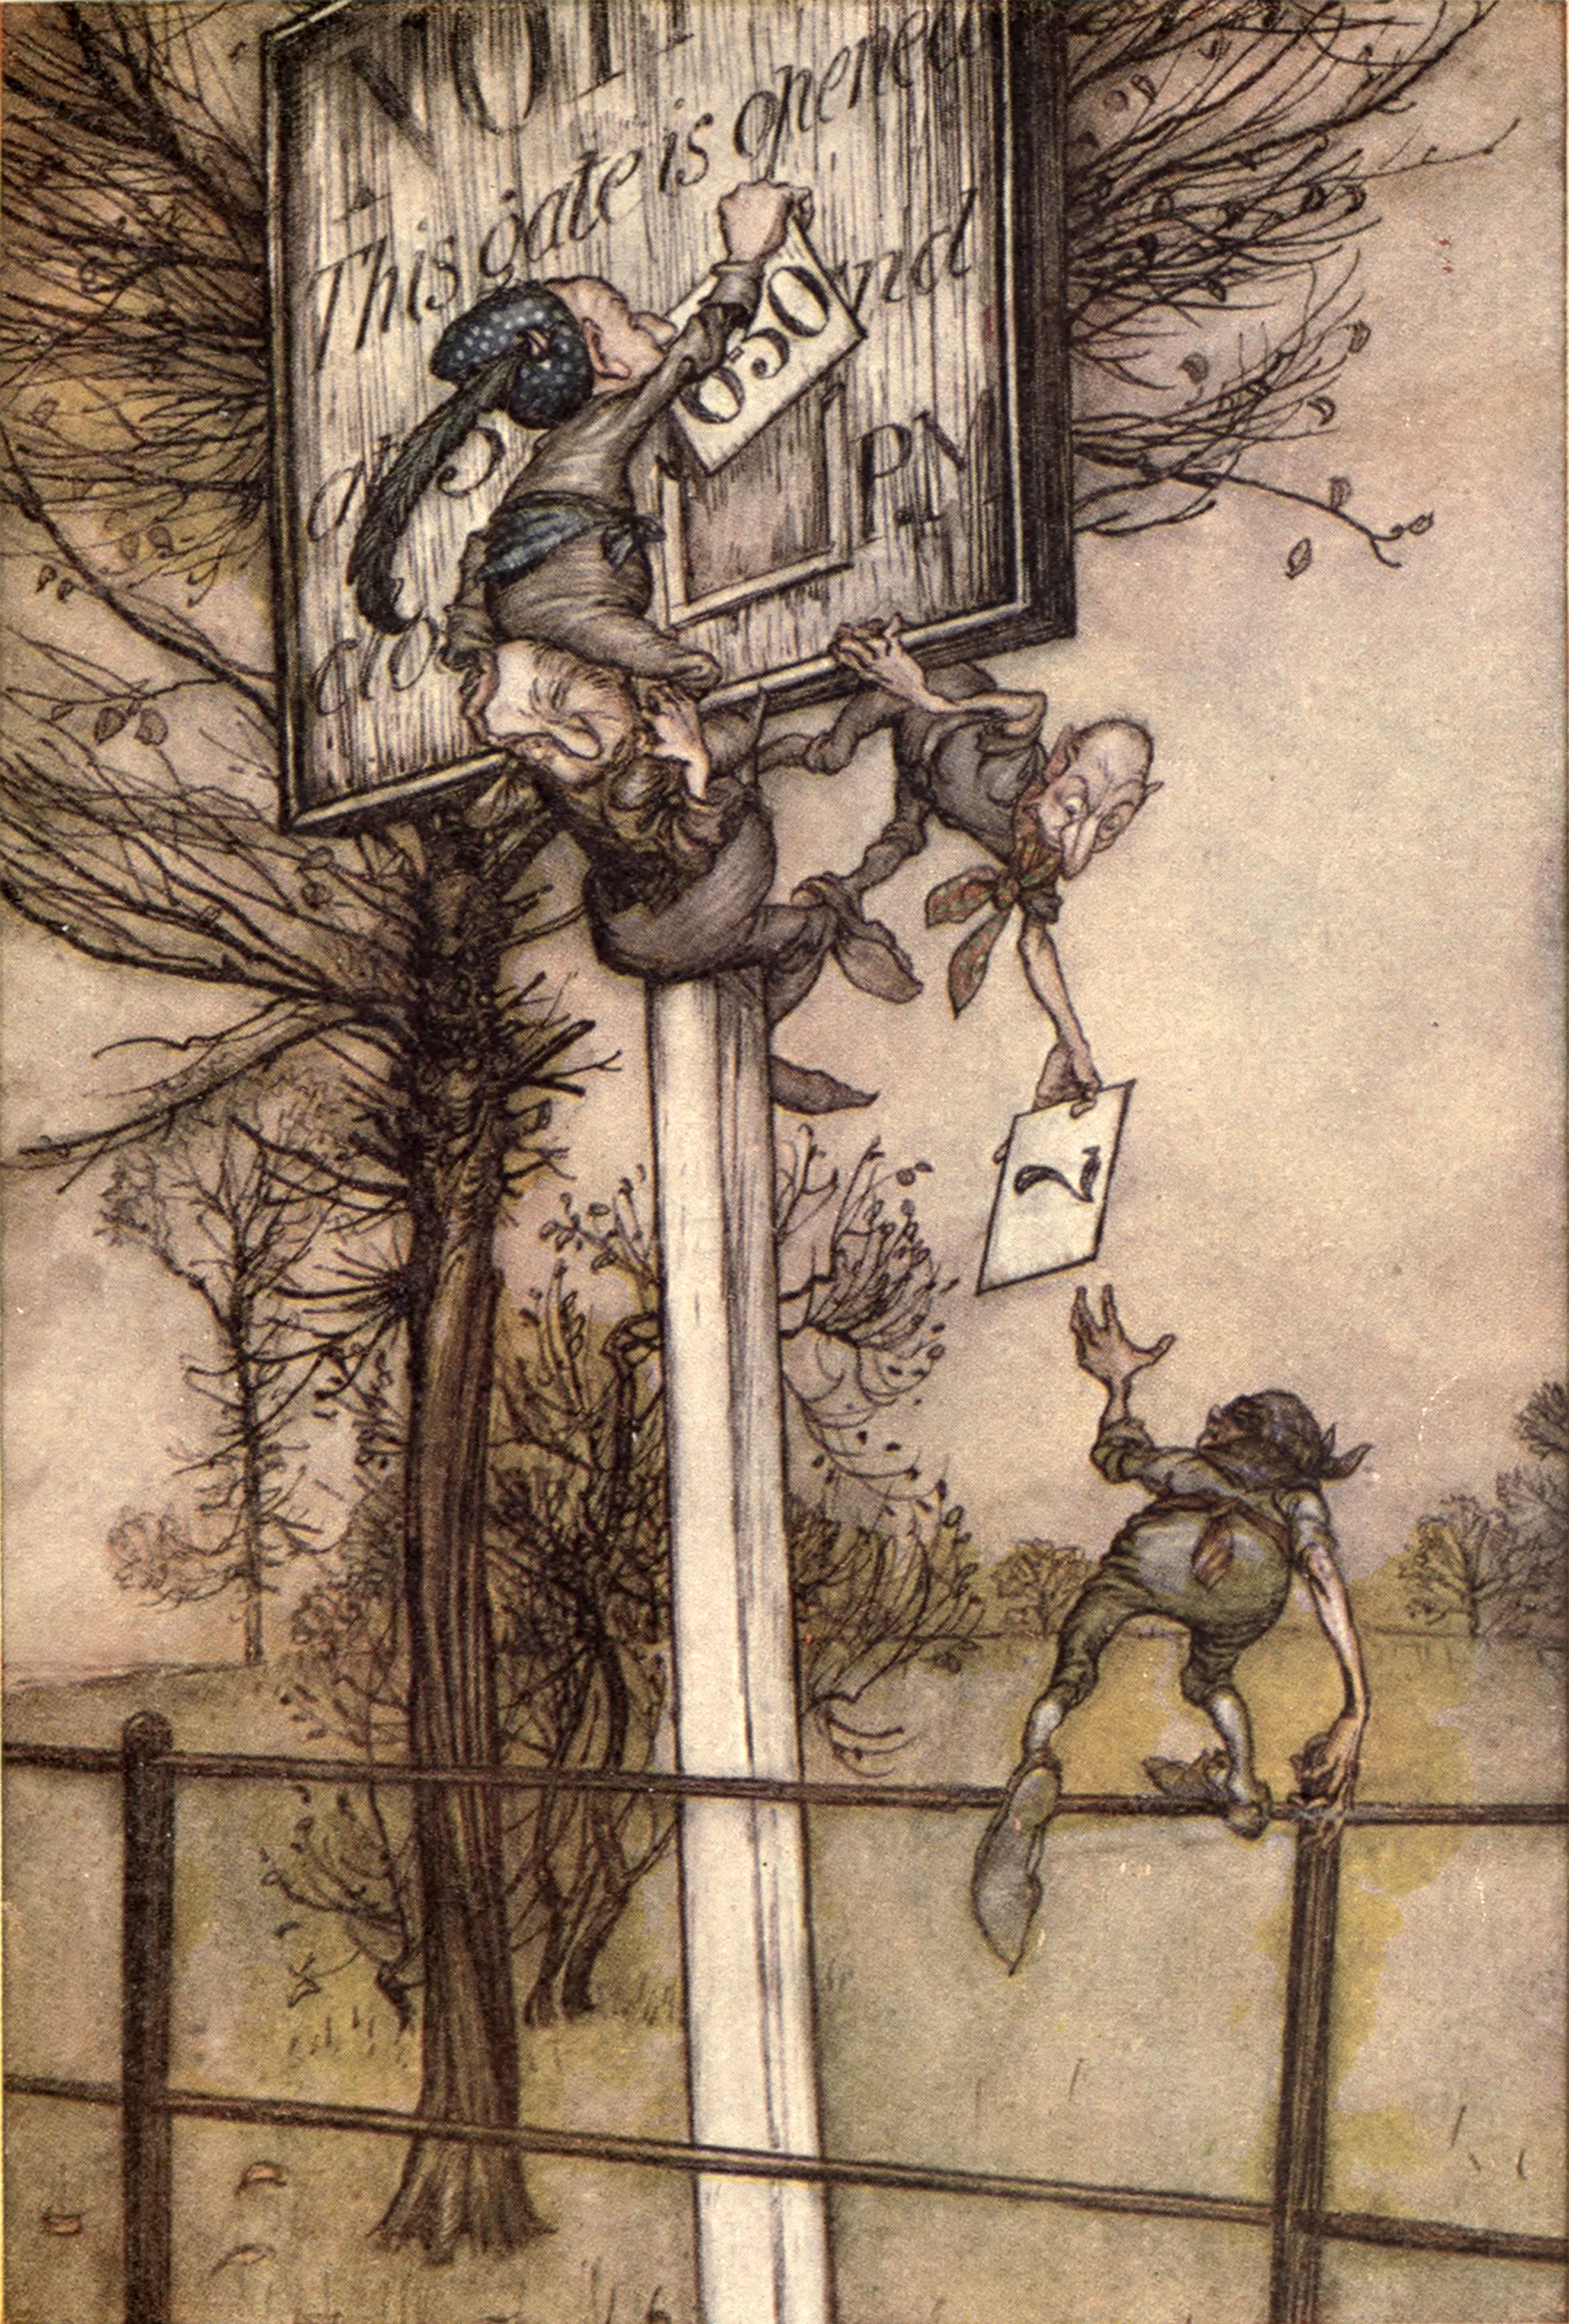 Peter Pan in Kensington Gardens, Arthur Rackham, 1906.